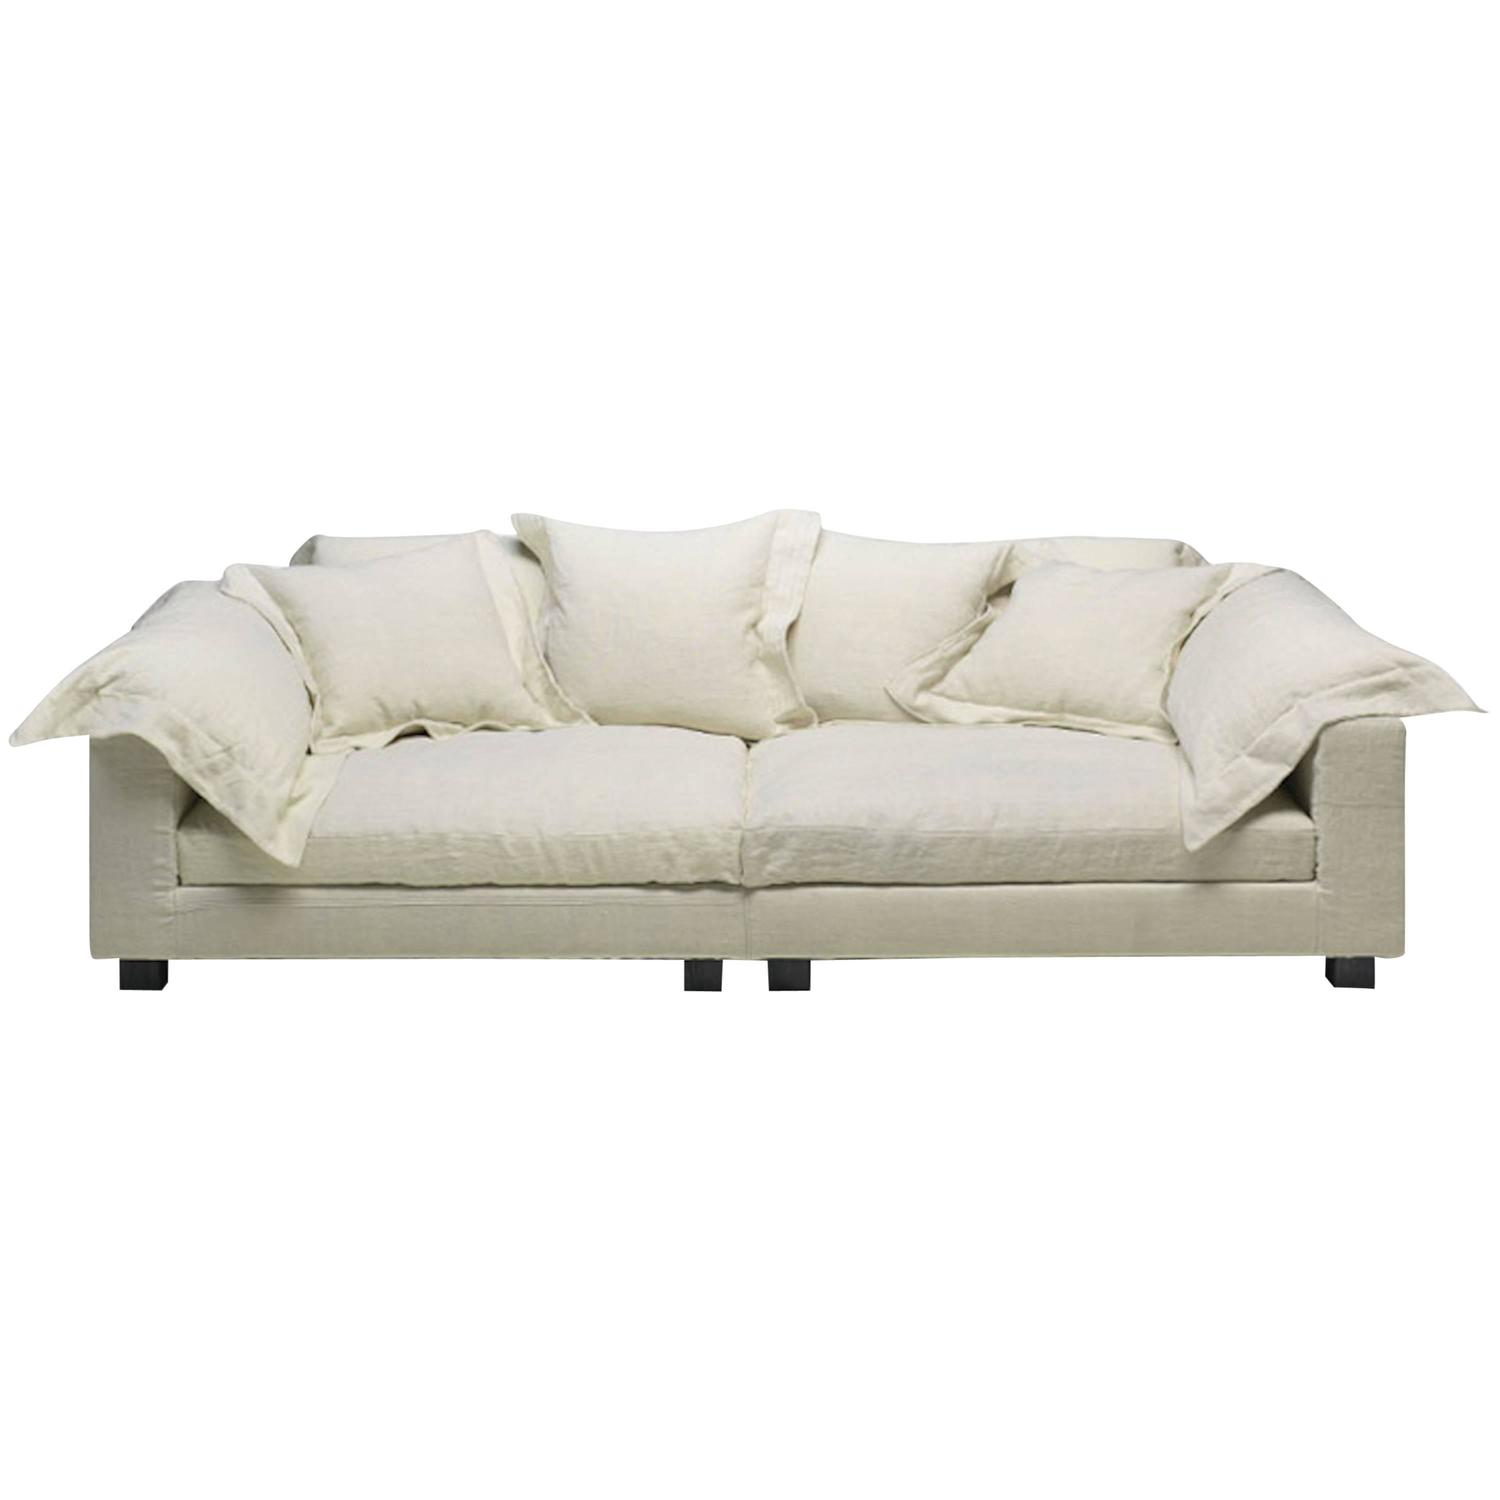 Nebula Nine Sofa by Moroso with Goose Down Cushions For Sale at